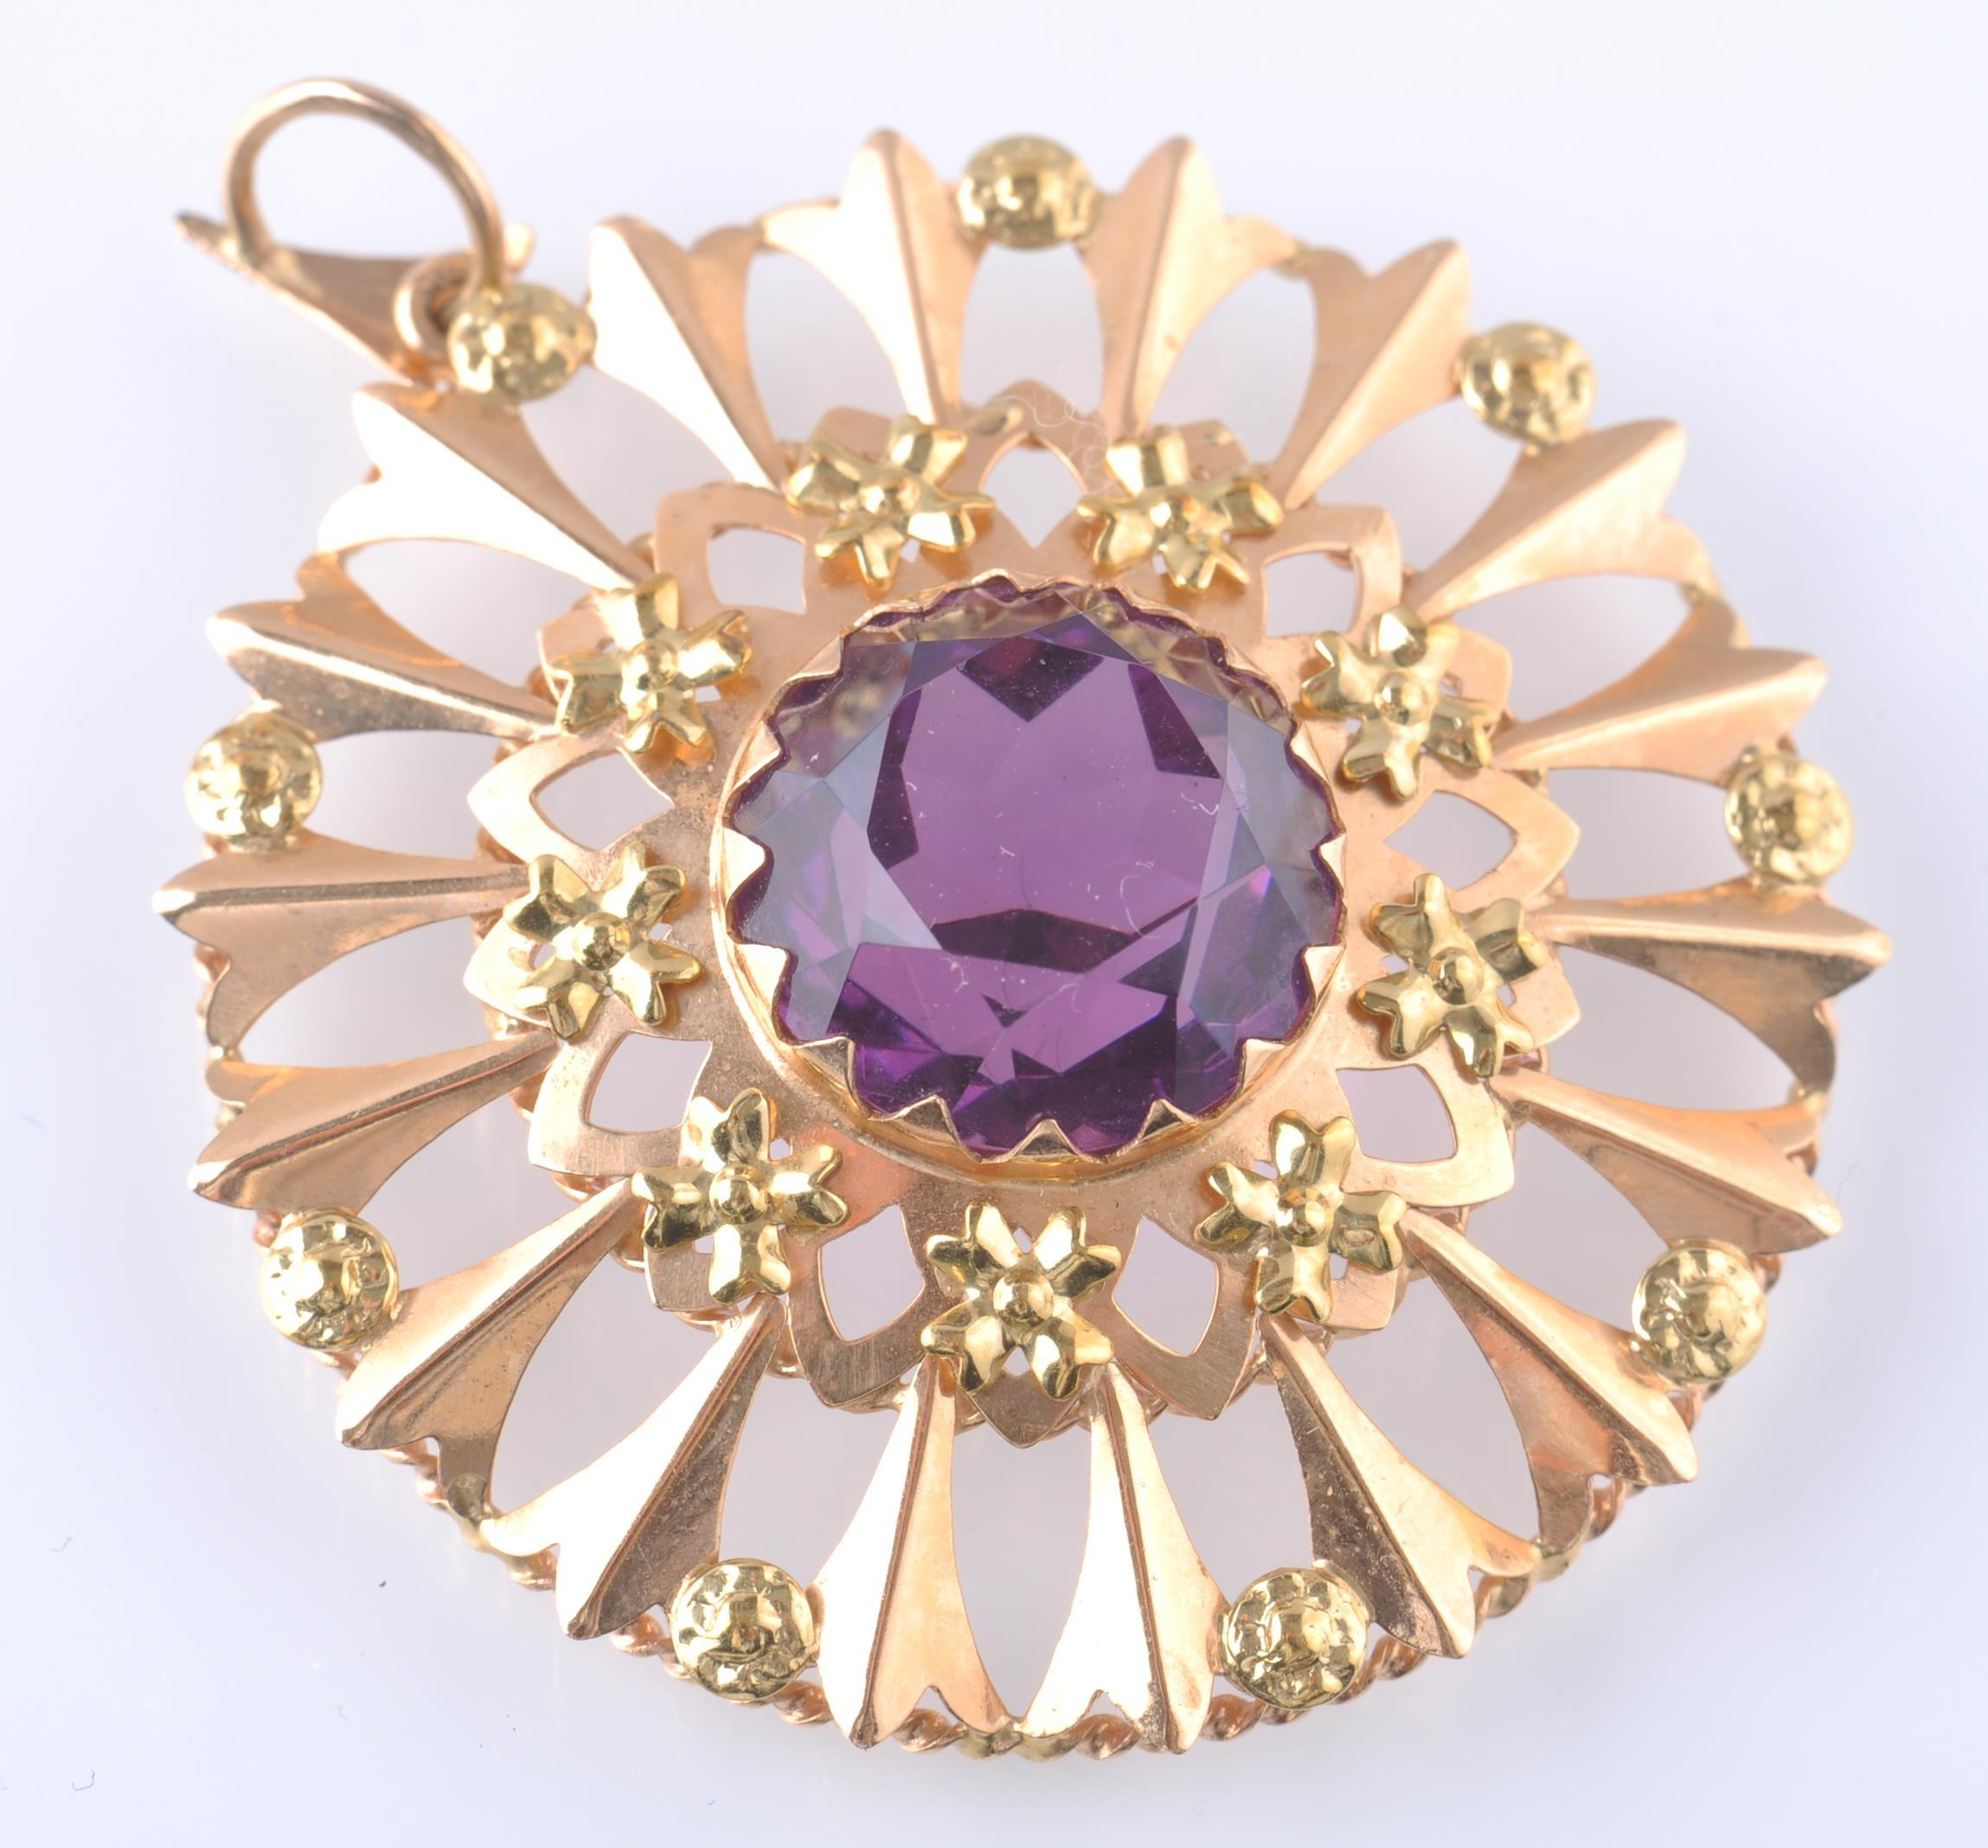 Lot 101 - AN 18CT GOLD AND PURPLE GEM PENDANT BROOCH